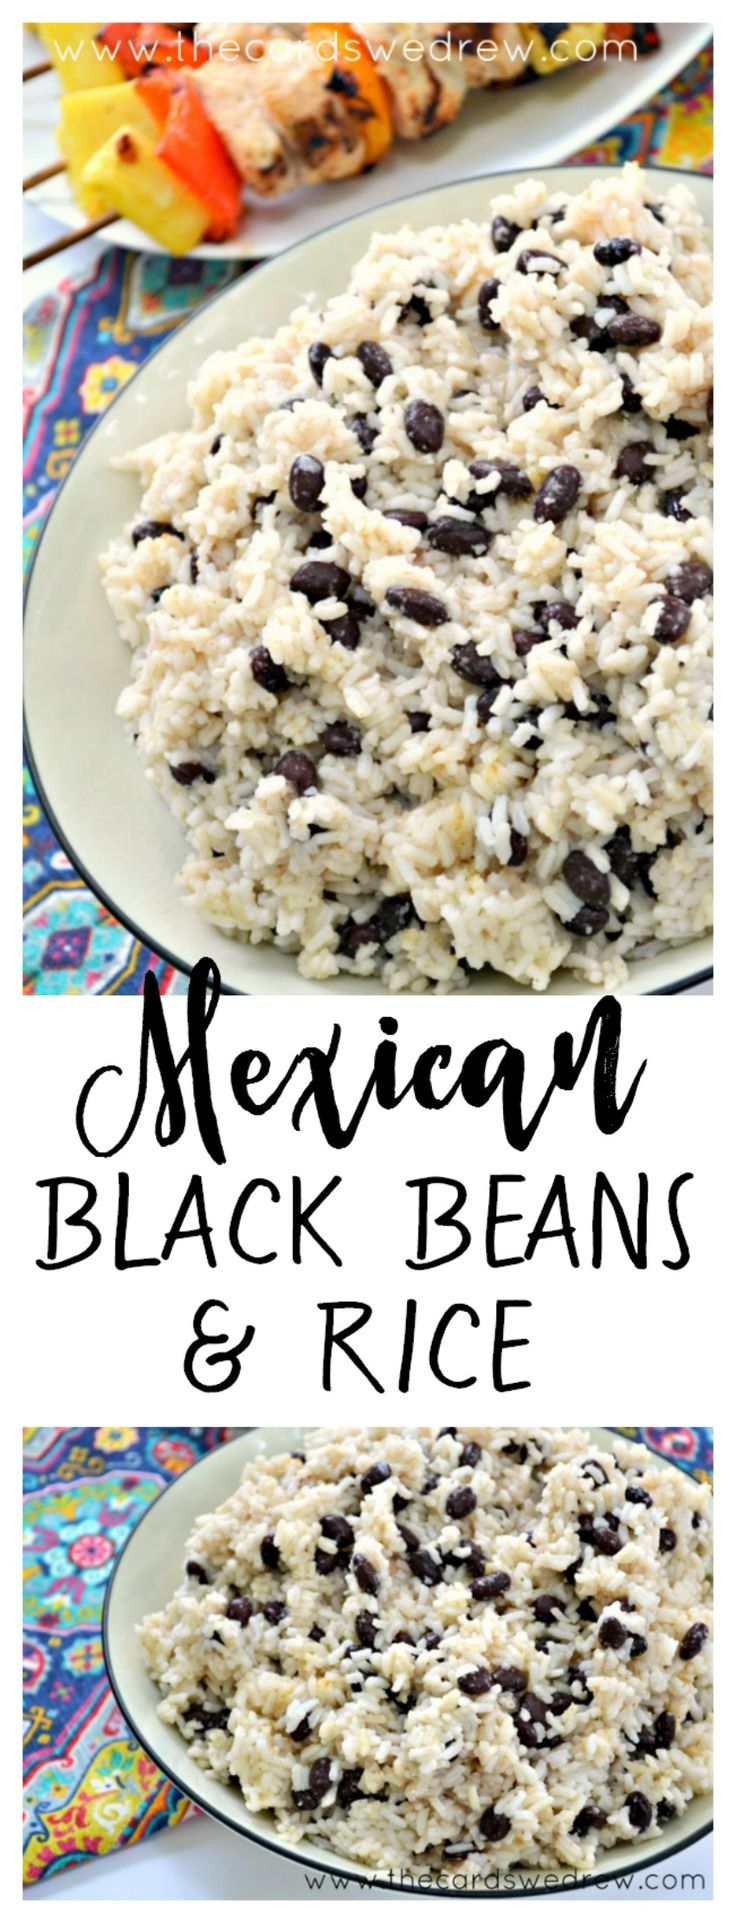 Black beans and rice, Mexican black beans and Black beans on Pinterest